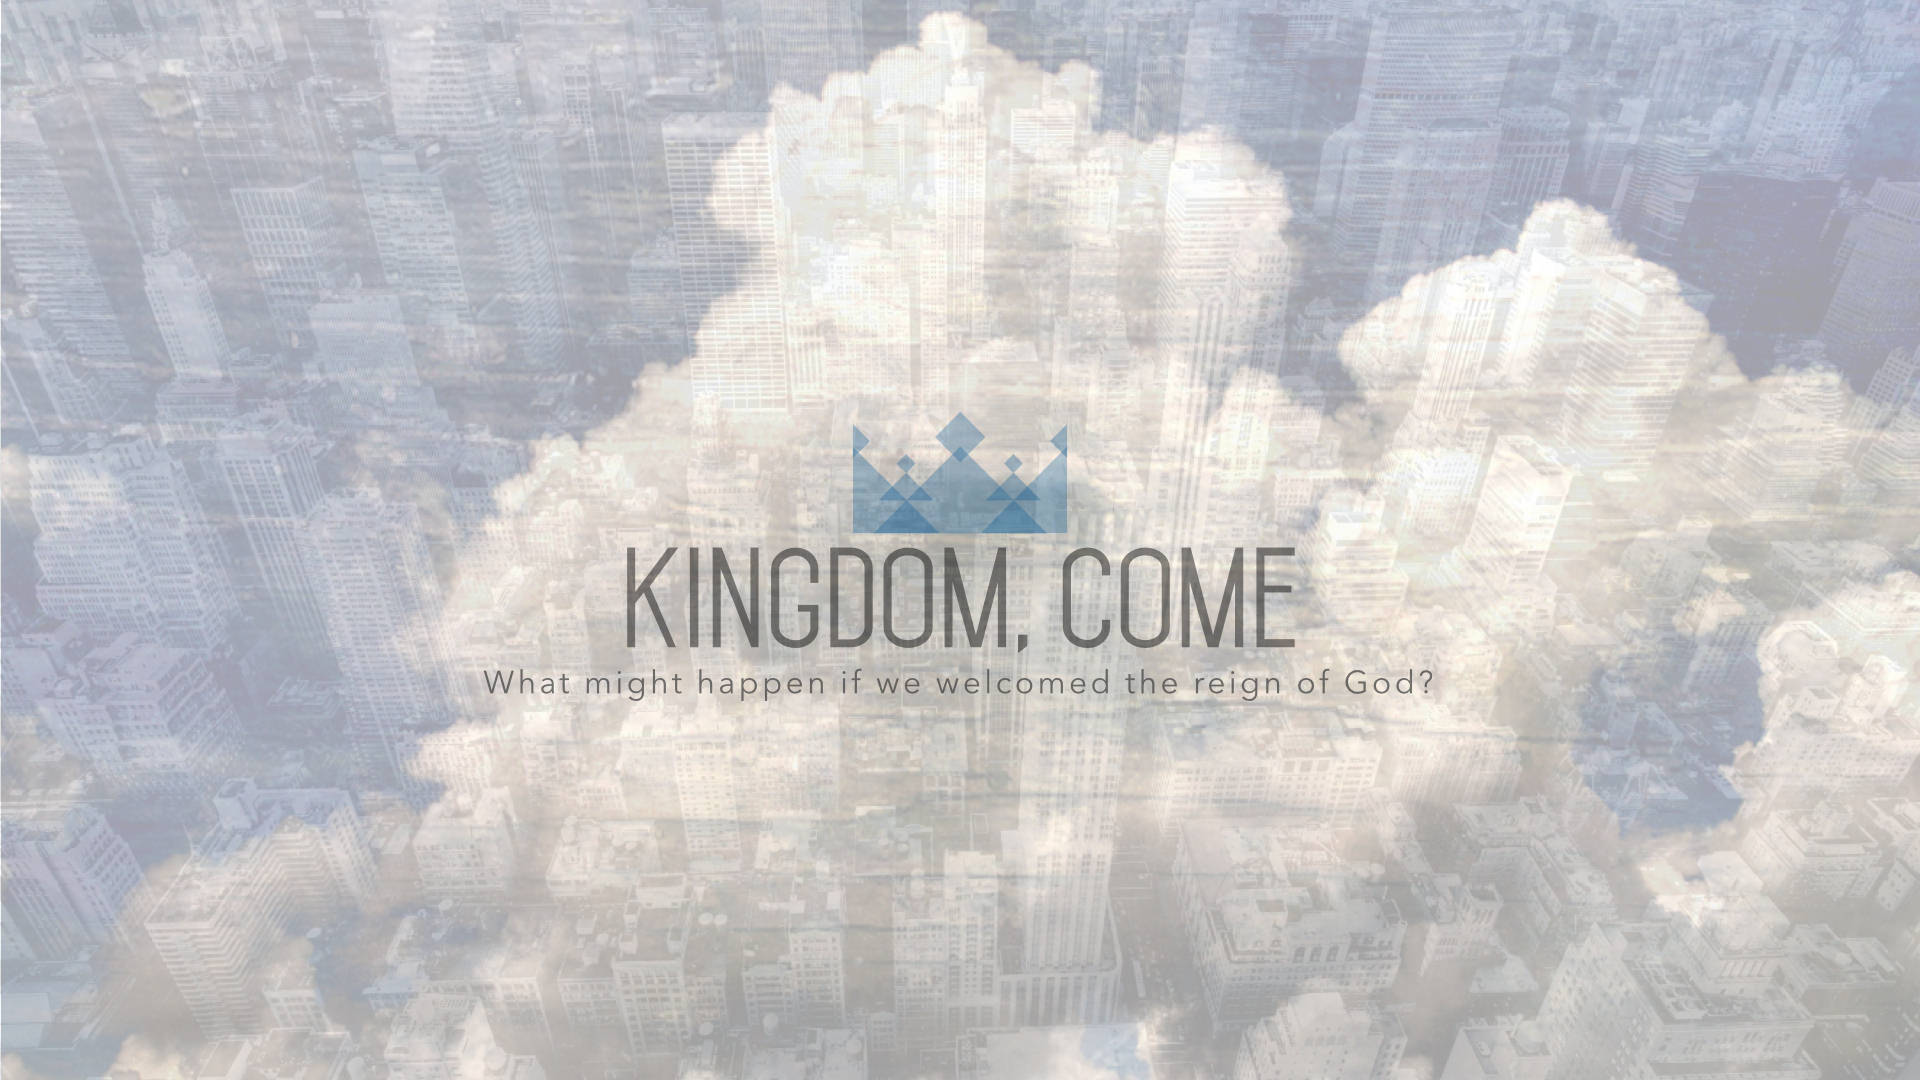 What might happen if we welcomed the reign of God?